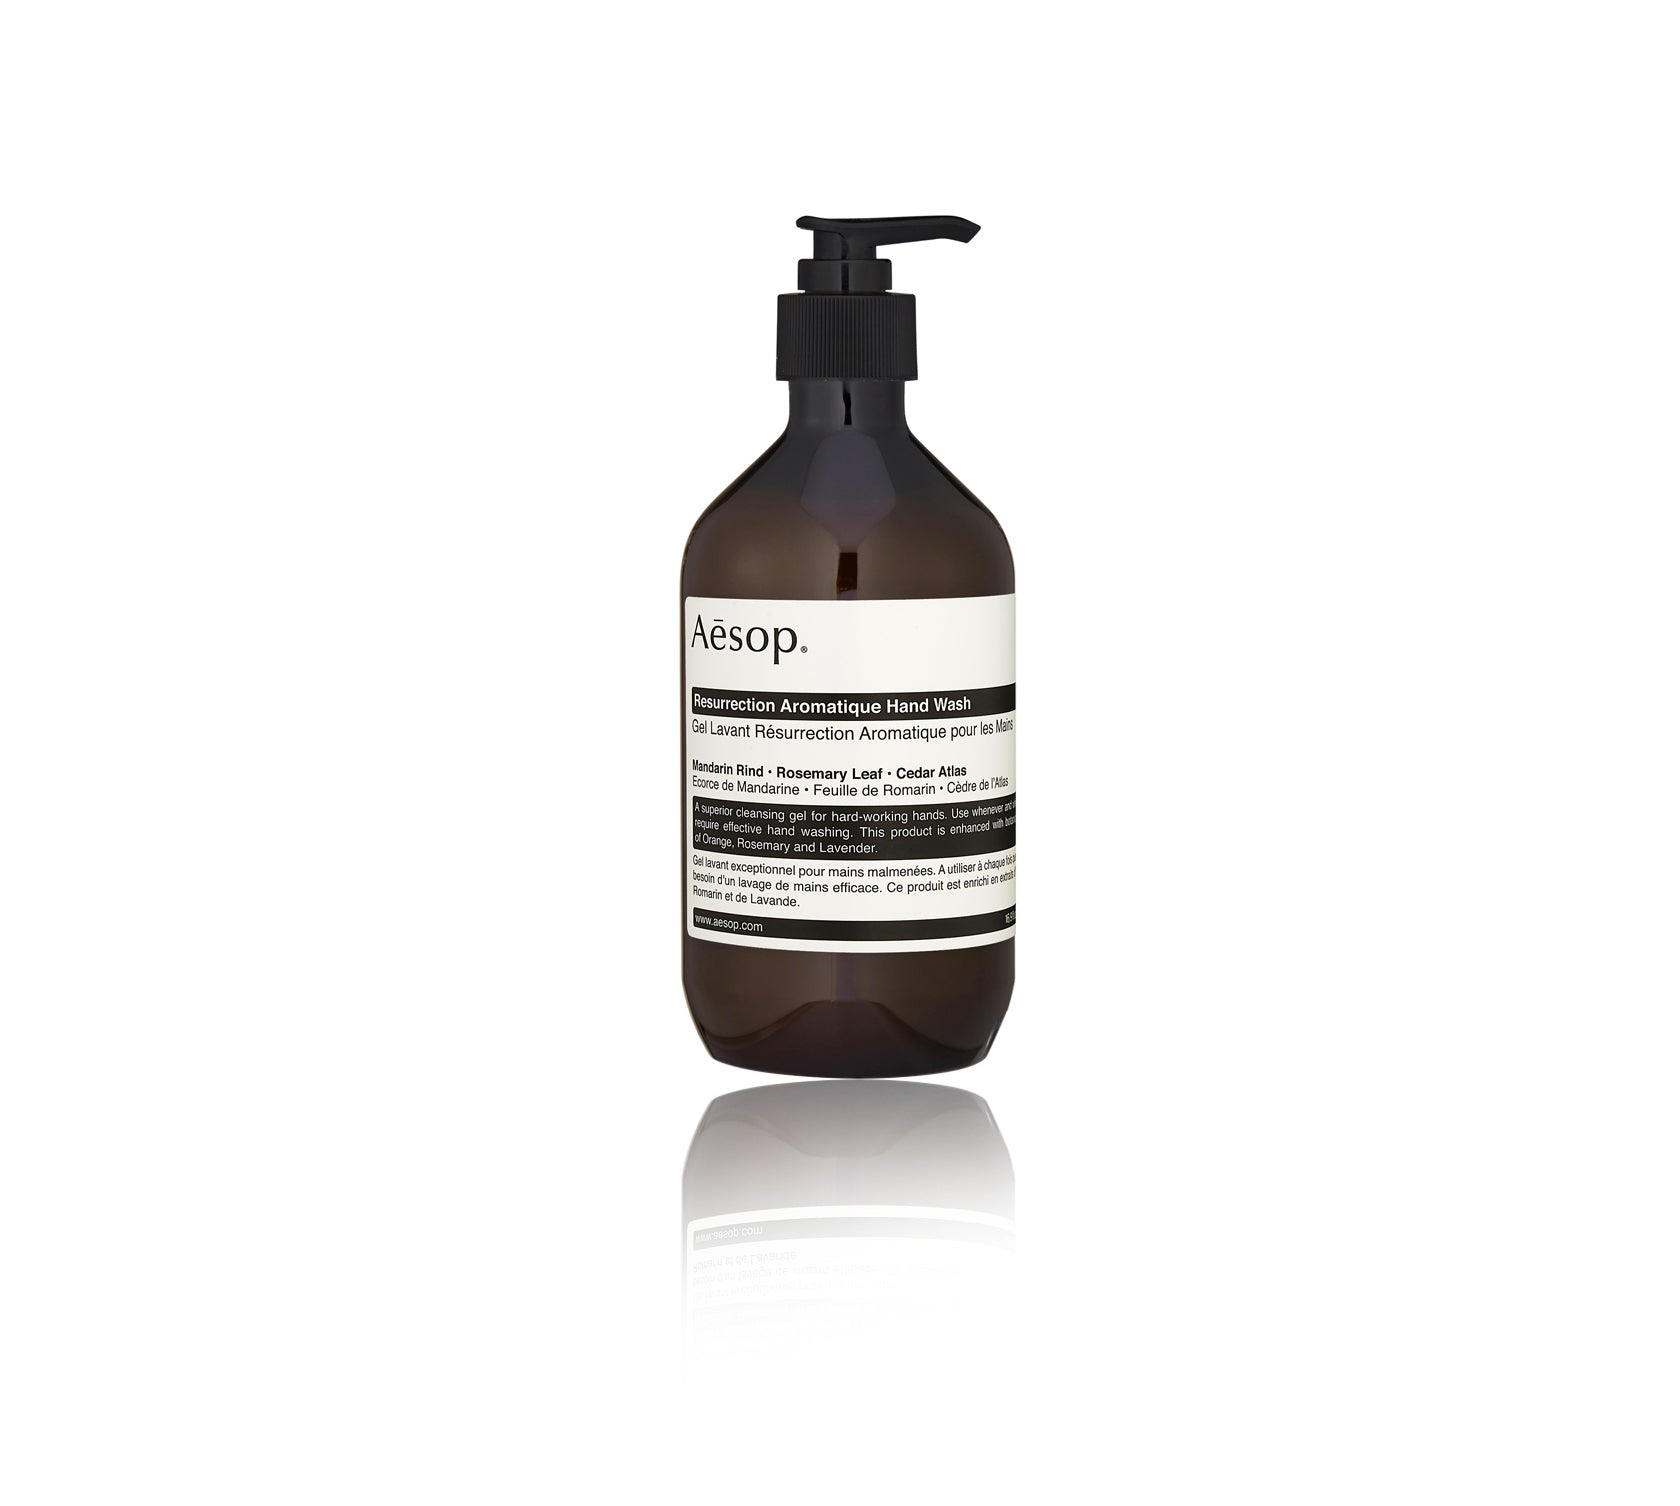 resurrection-aromatique-hand-wash